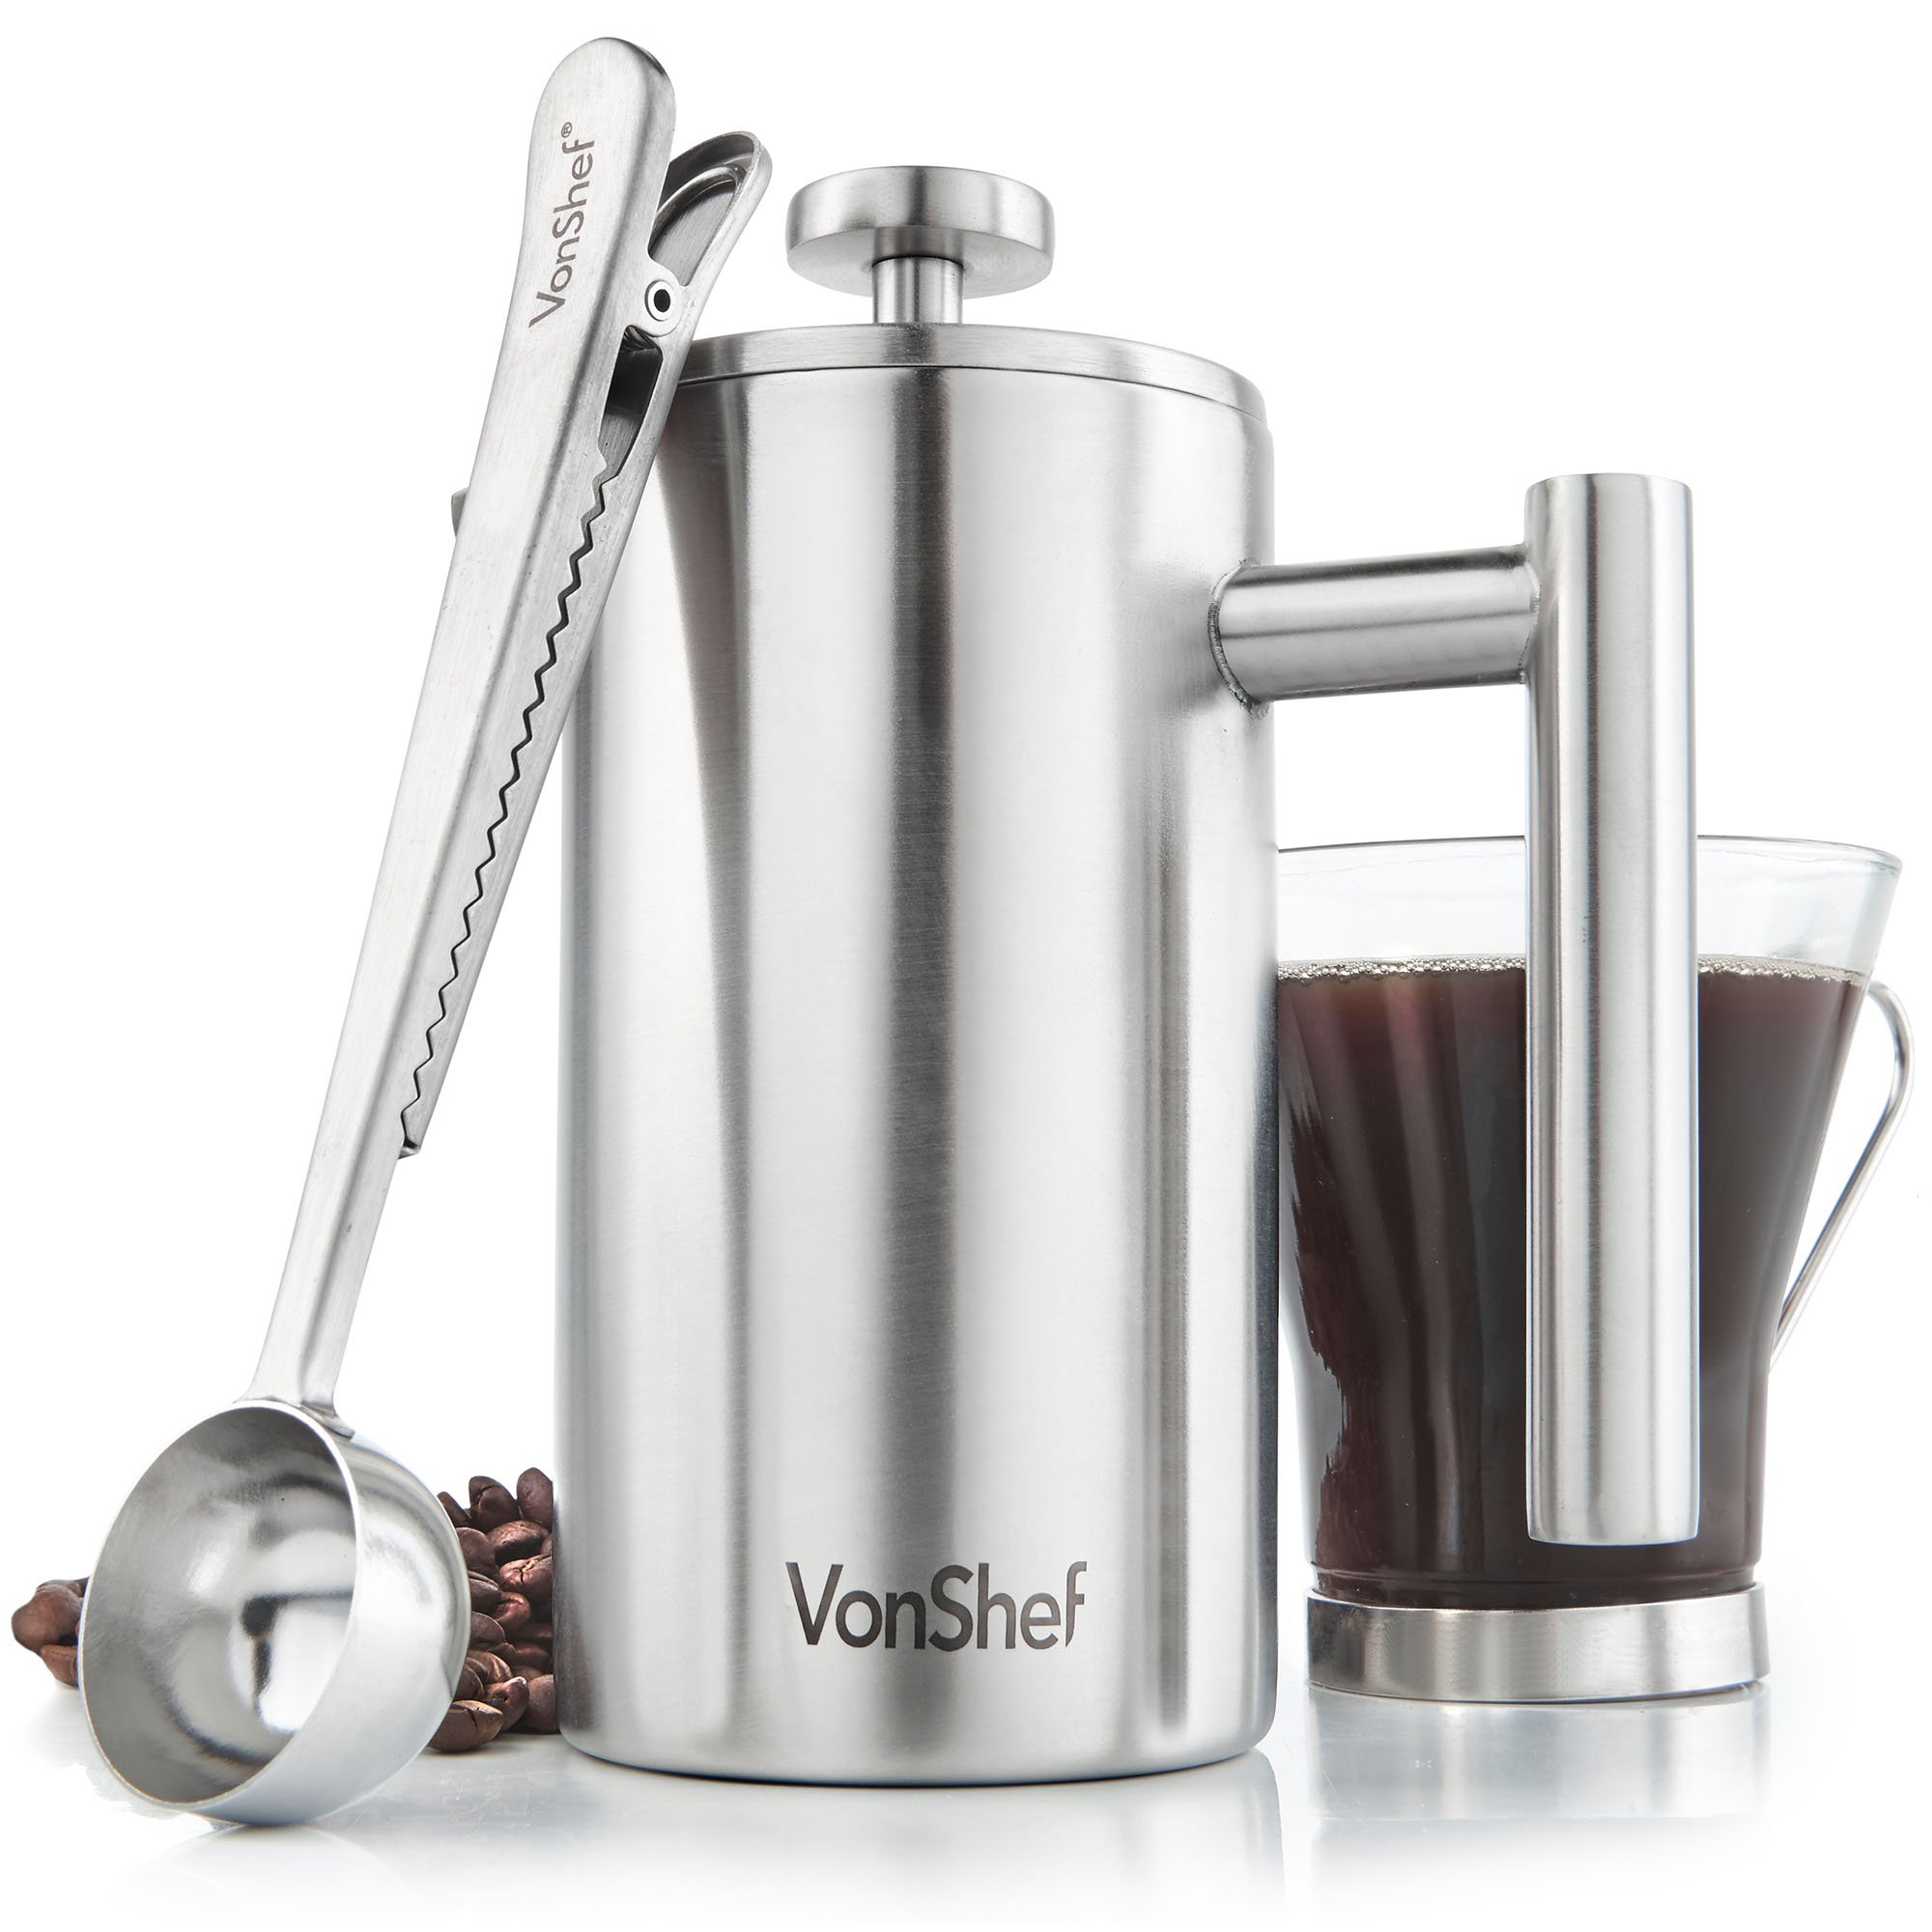 VonShef 3 Cup French Press Double-Wall Satin Polished Stainless Steel Cafetiere Coffee with Filter